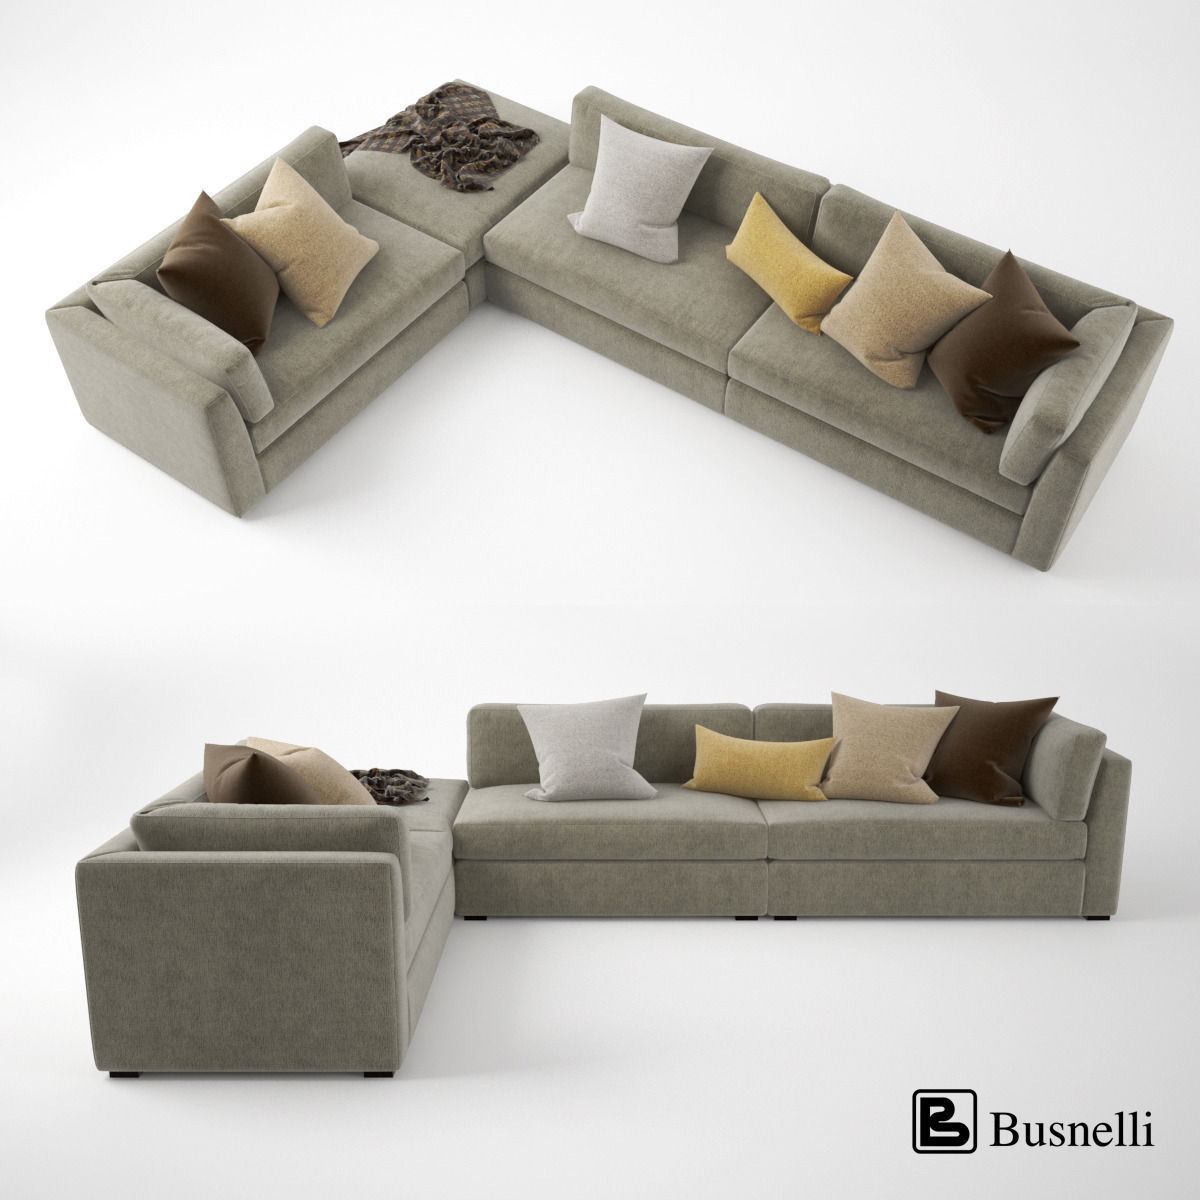 Busnelli Oh-mar Corner Sectional Sofa | 3D model